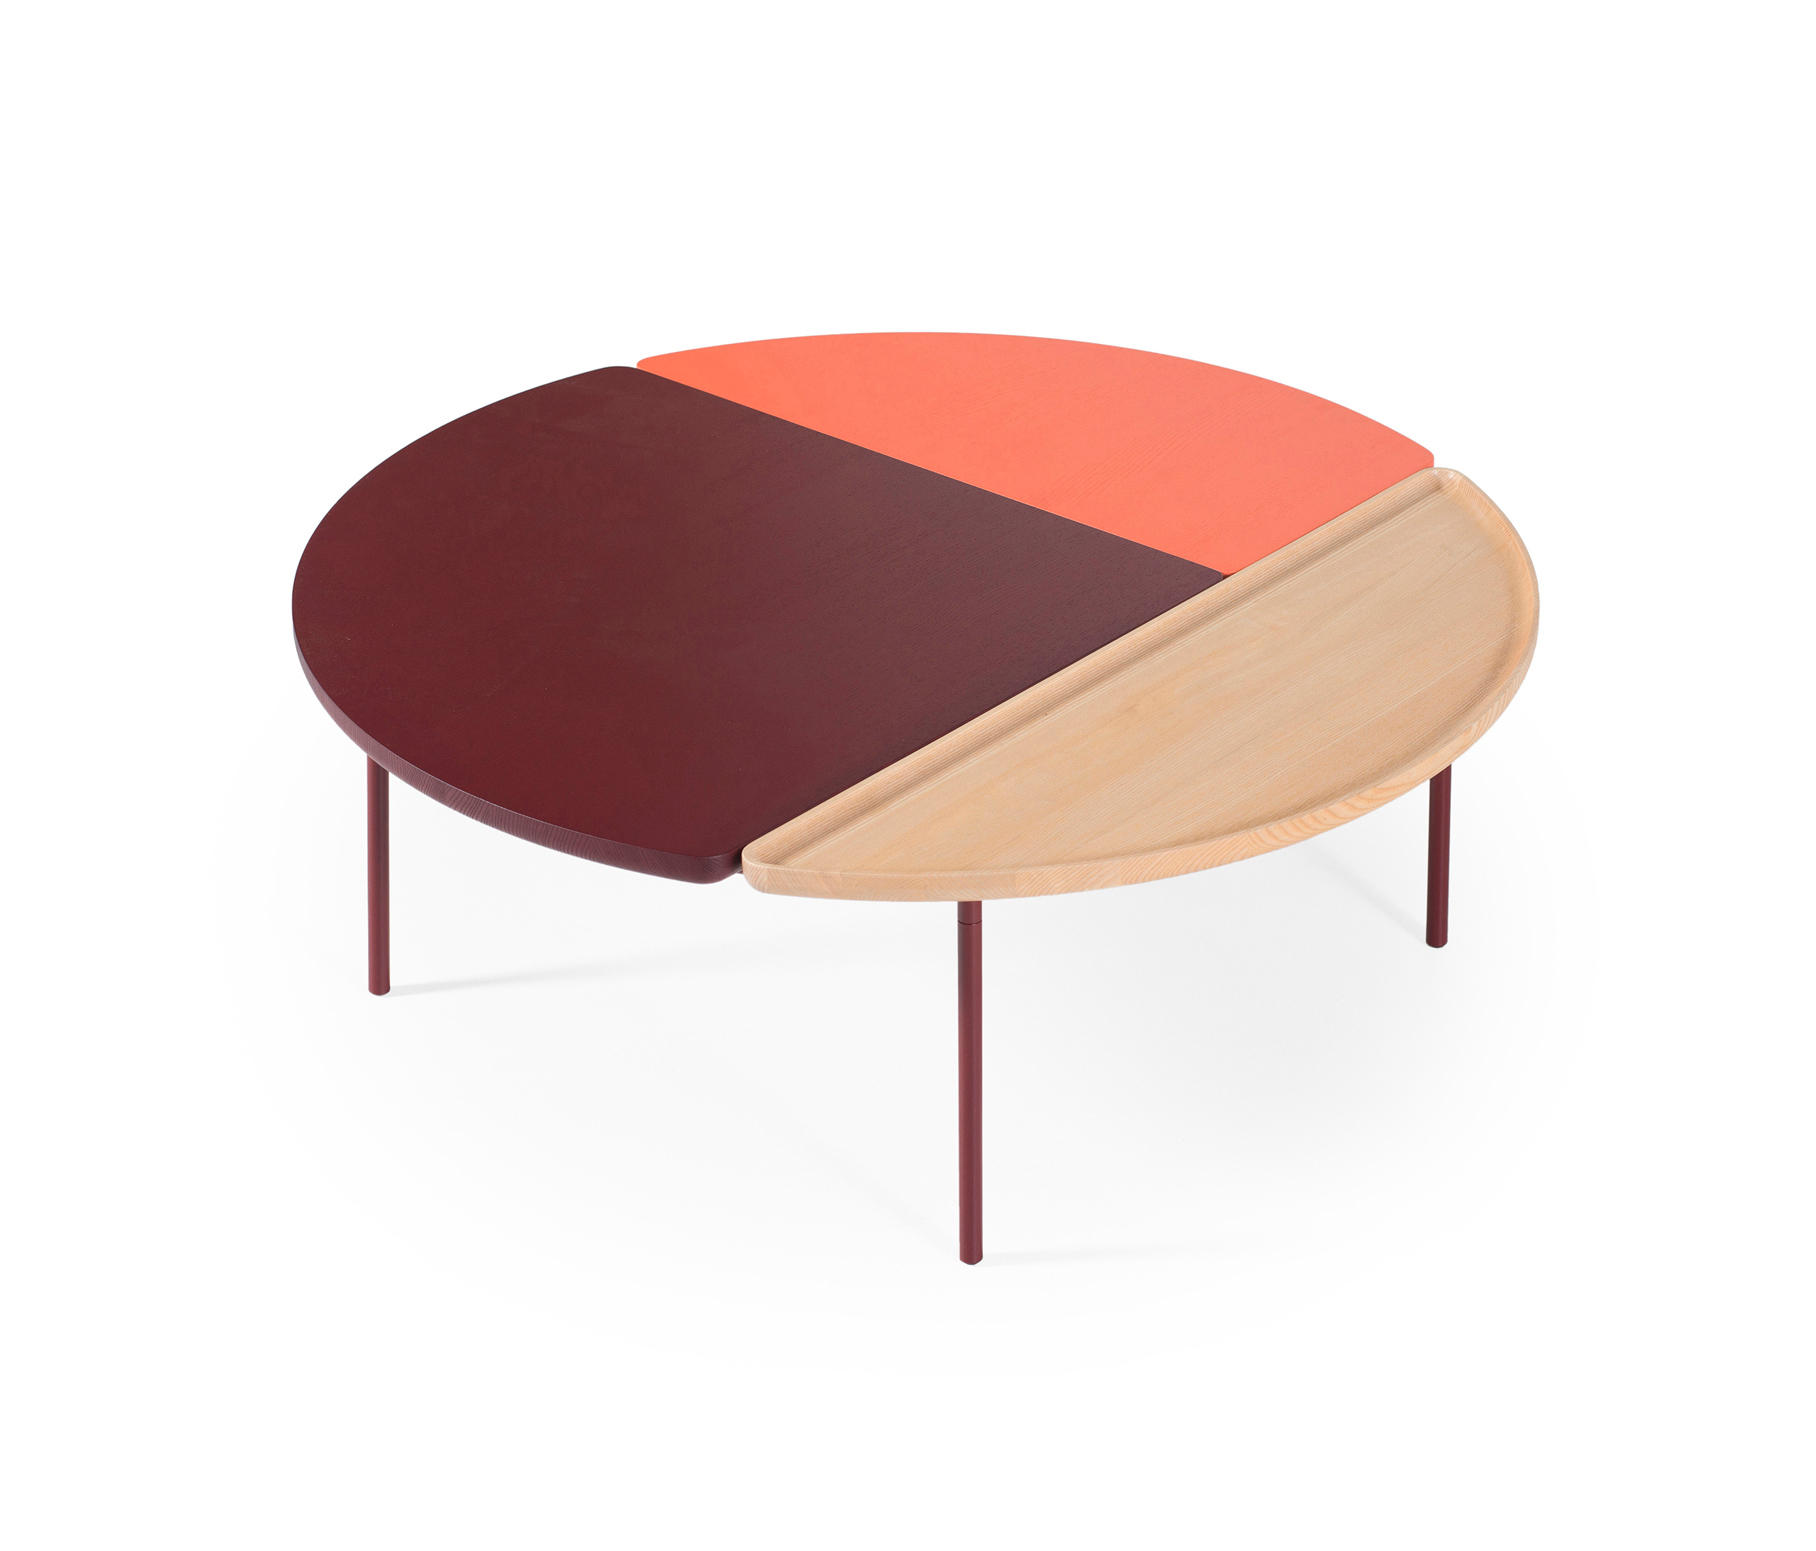 treet lounge table  lounge tables from mitab  architonic -  treet lounge table by mitab  lounge tables